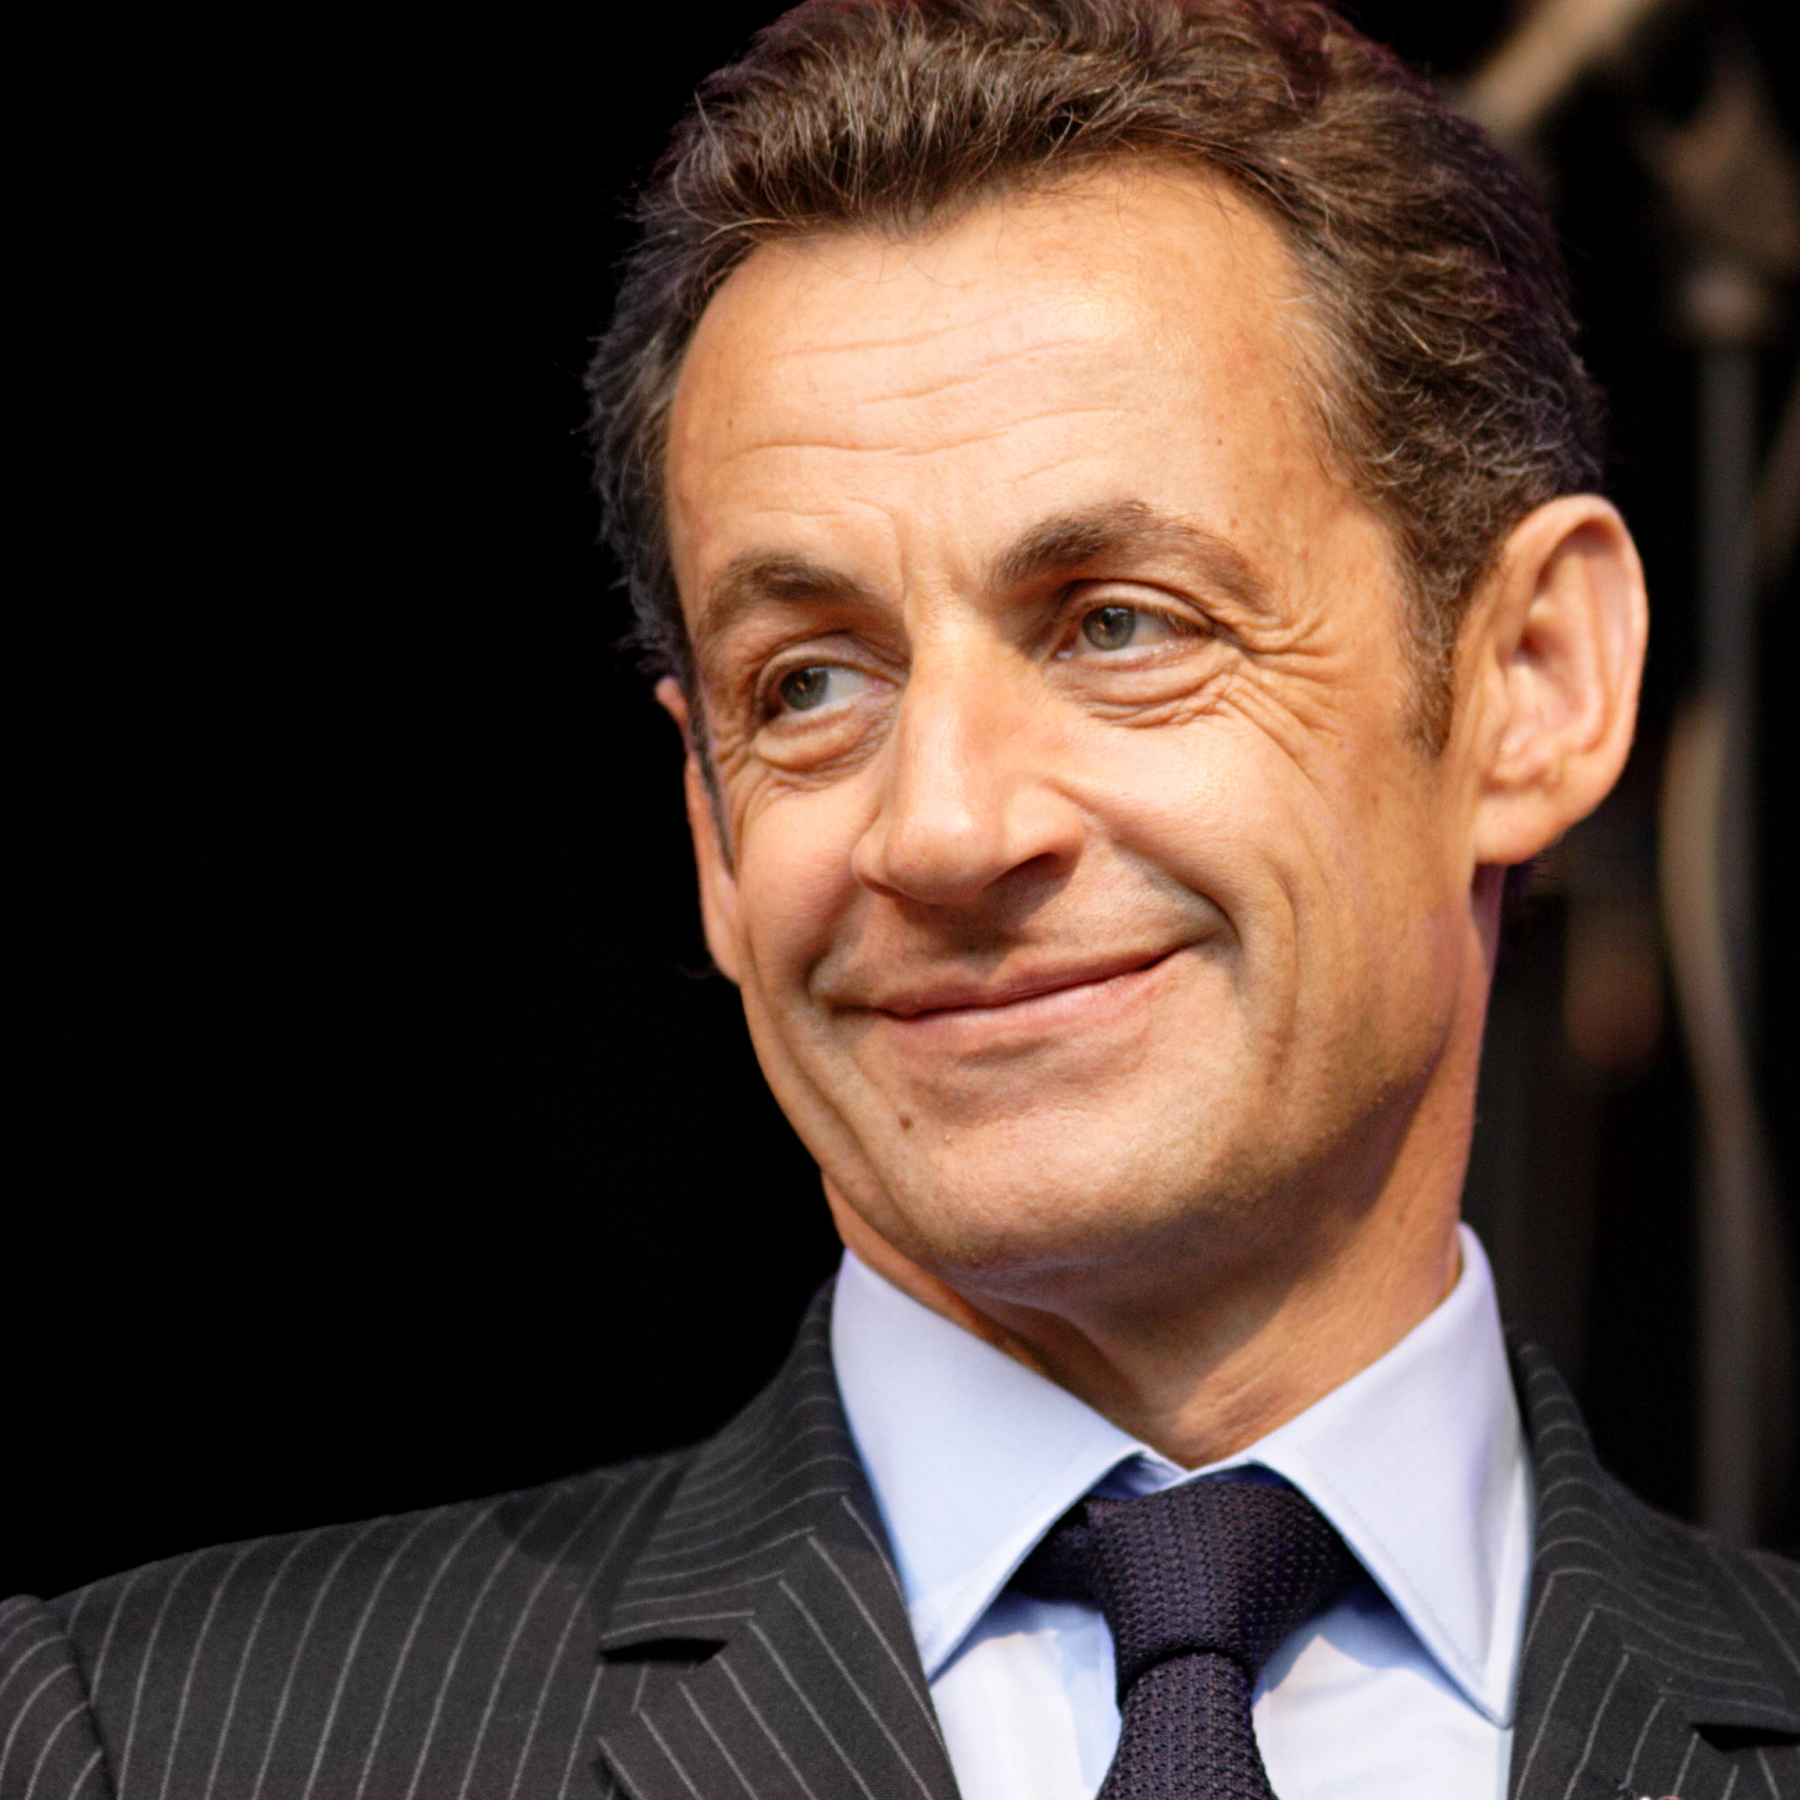 Nicolas Sarkozy Wikipedia The Free Encyclopedia